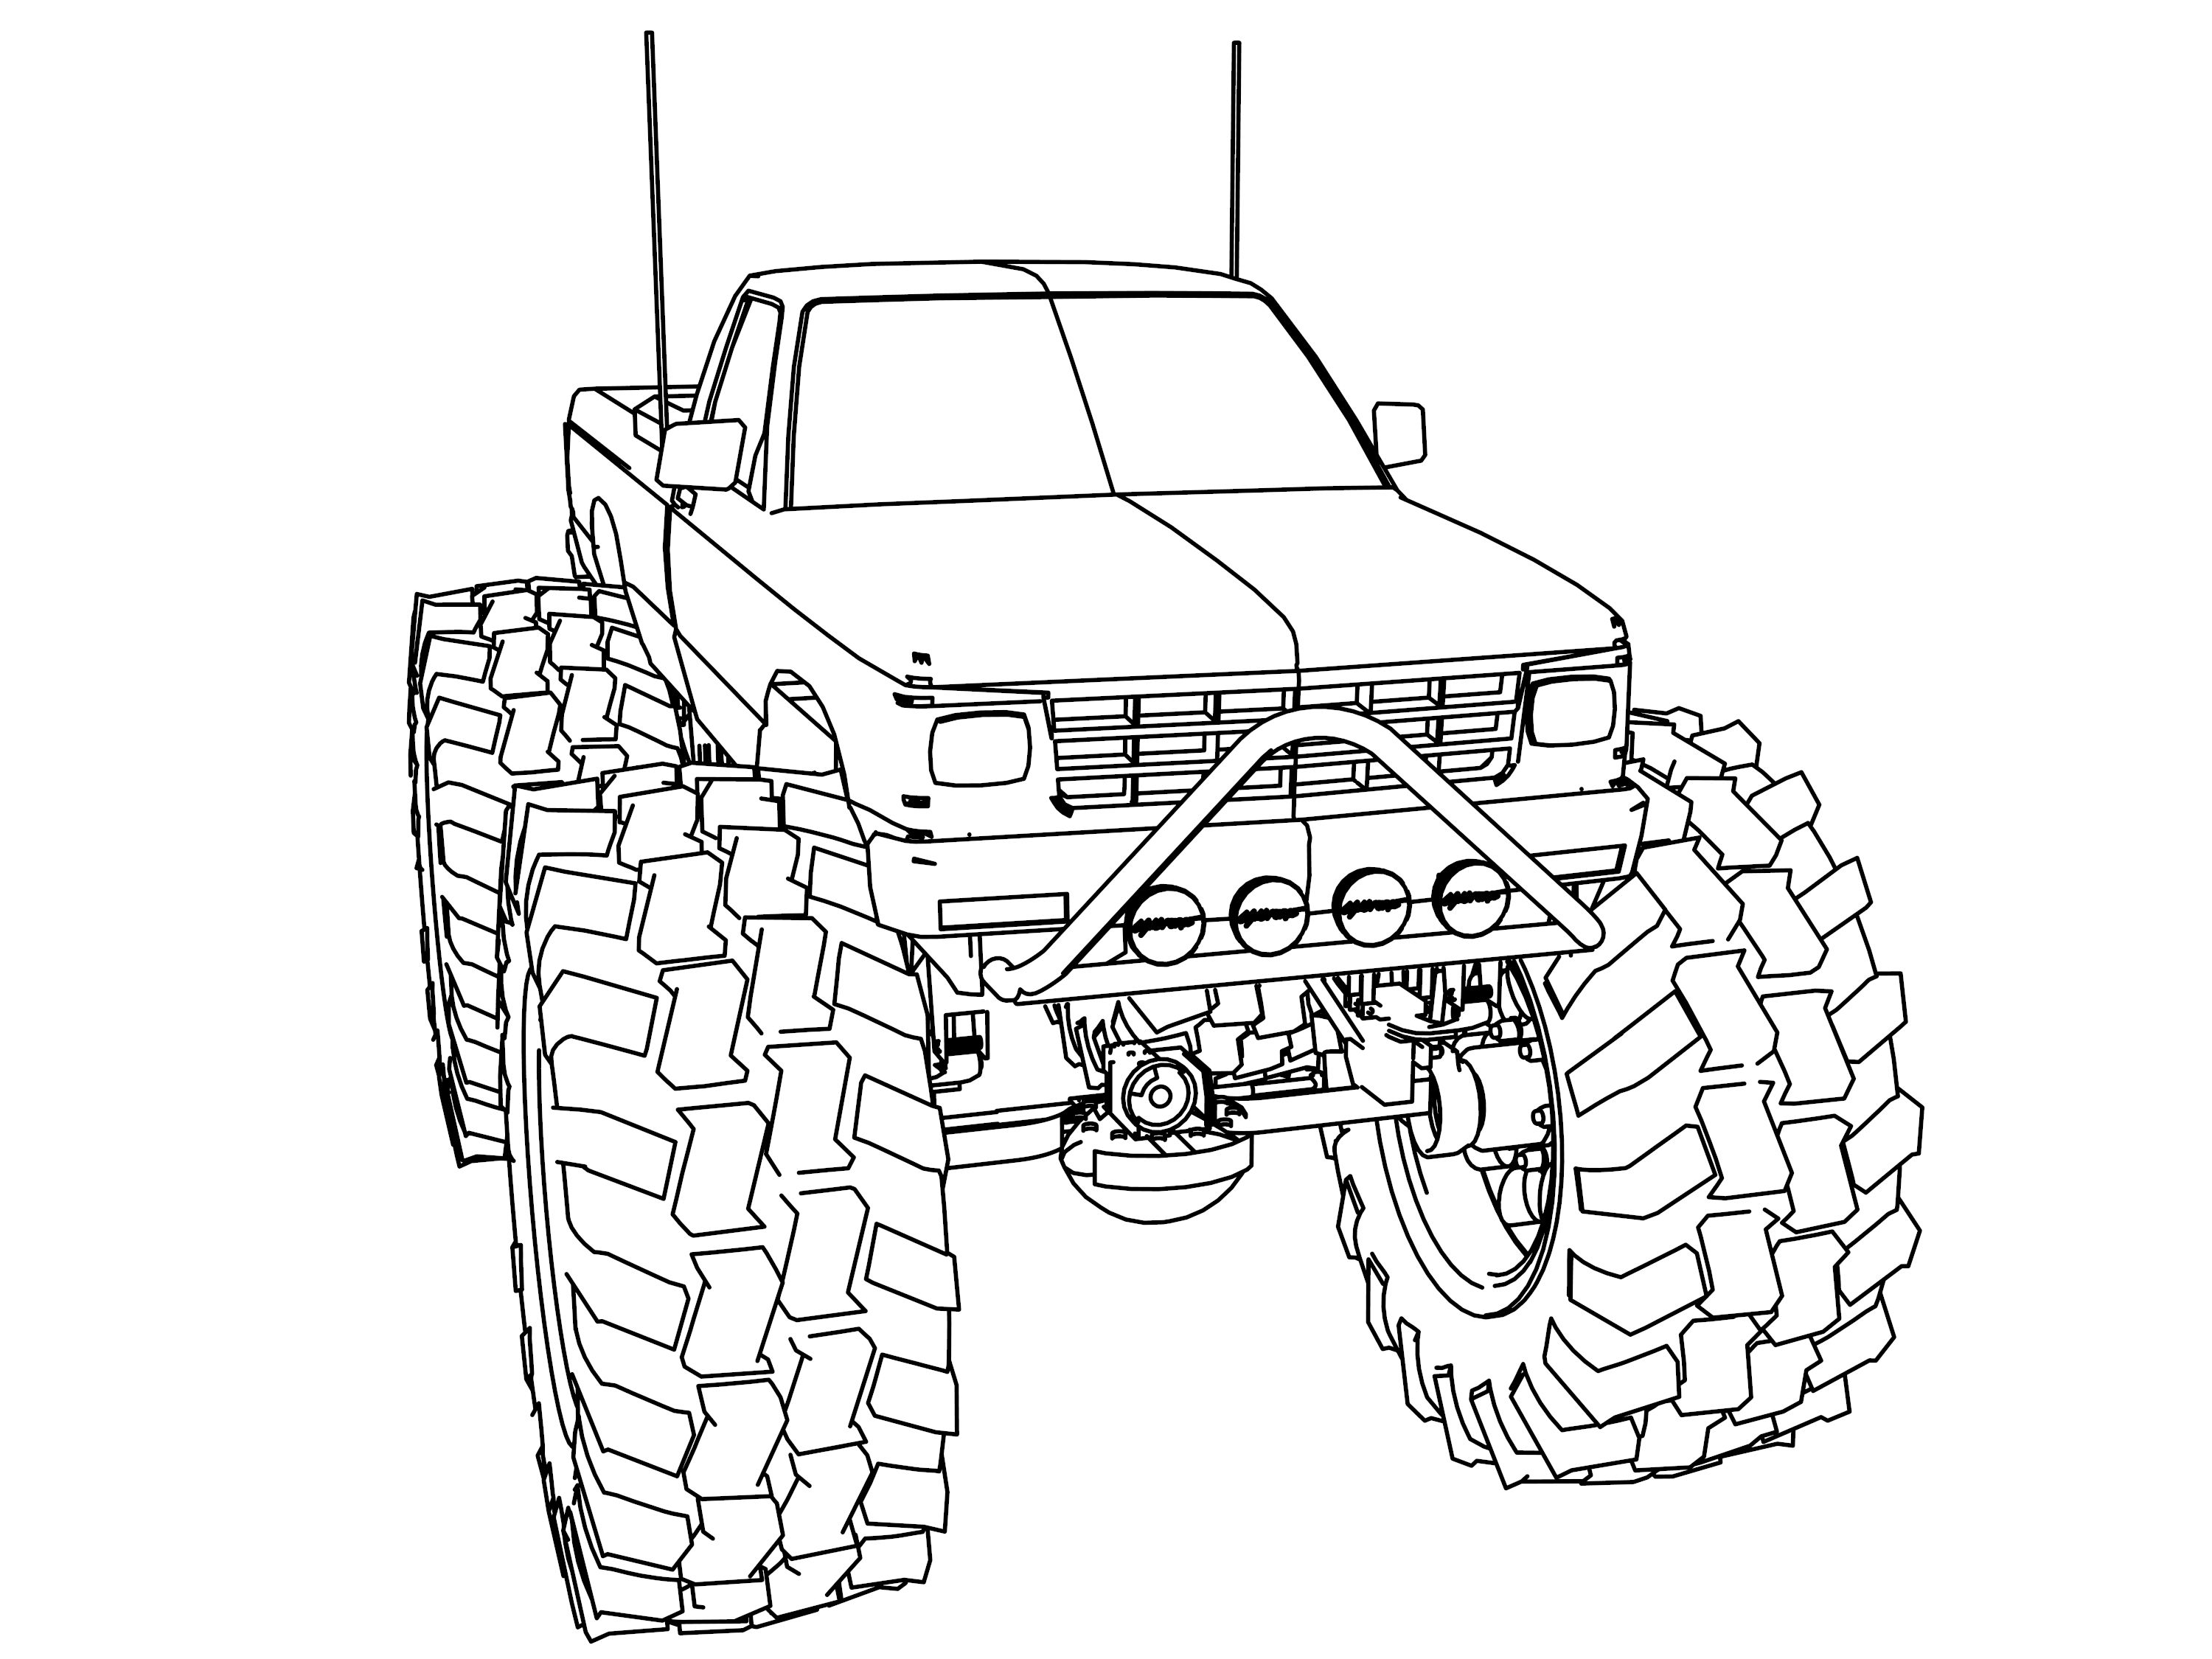 Coloring pictures of cars truck tractors - Monster Truck Coloring Pages